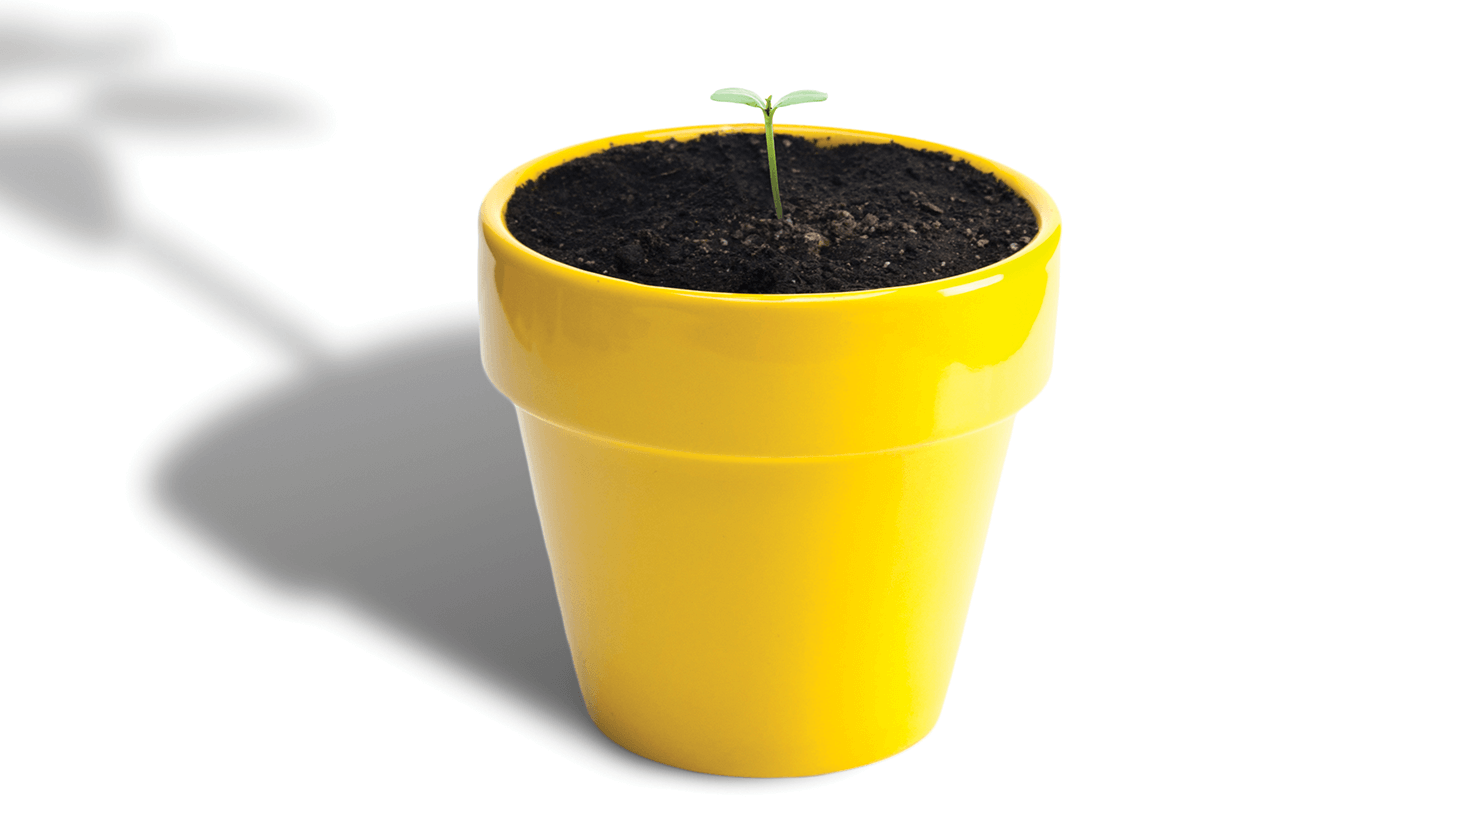 Small tree growing out of yellow pot